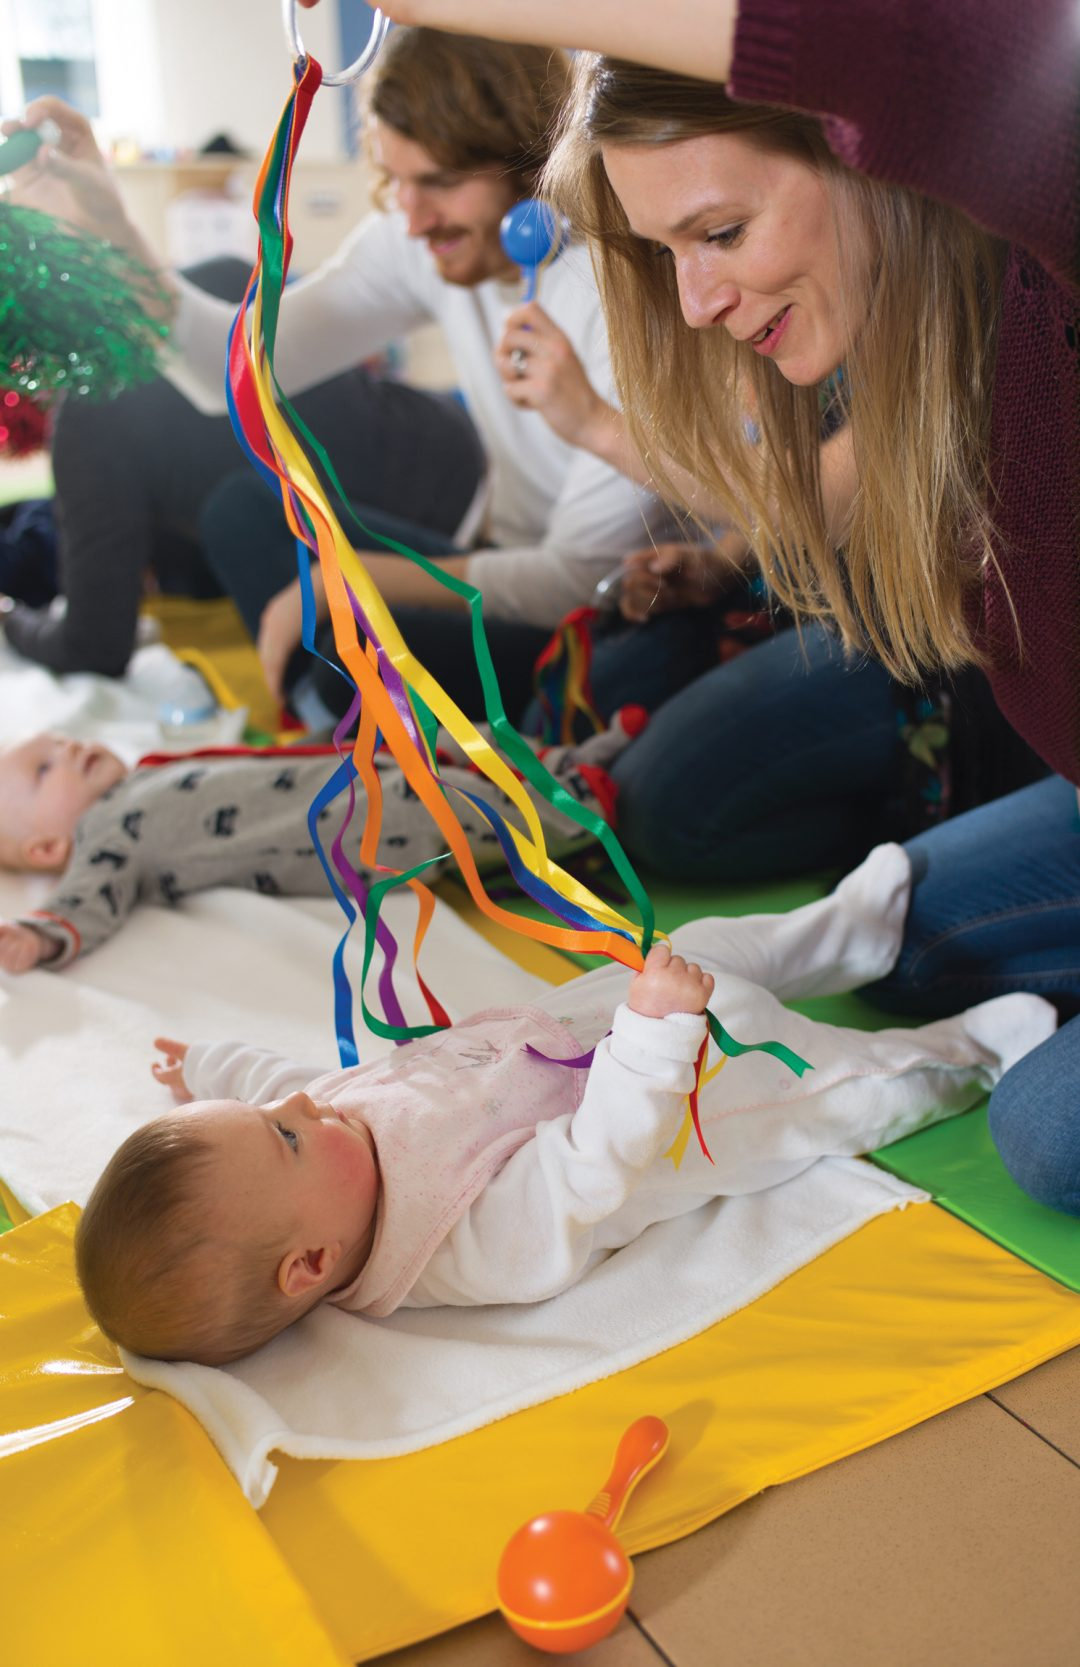 UP TO 1 BABY CLUB PAY AS YOU GO